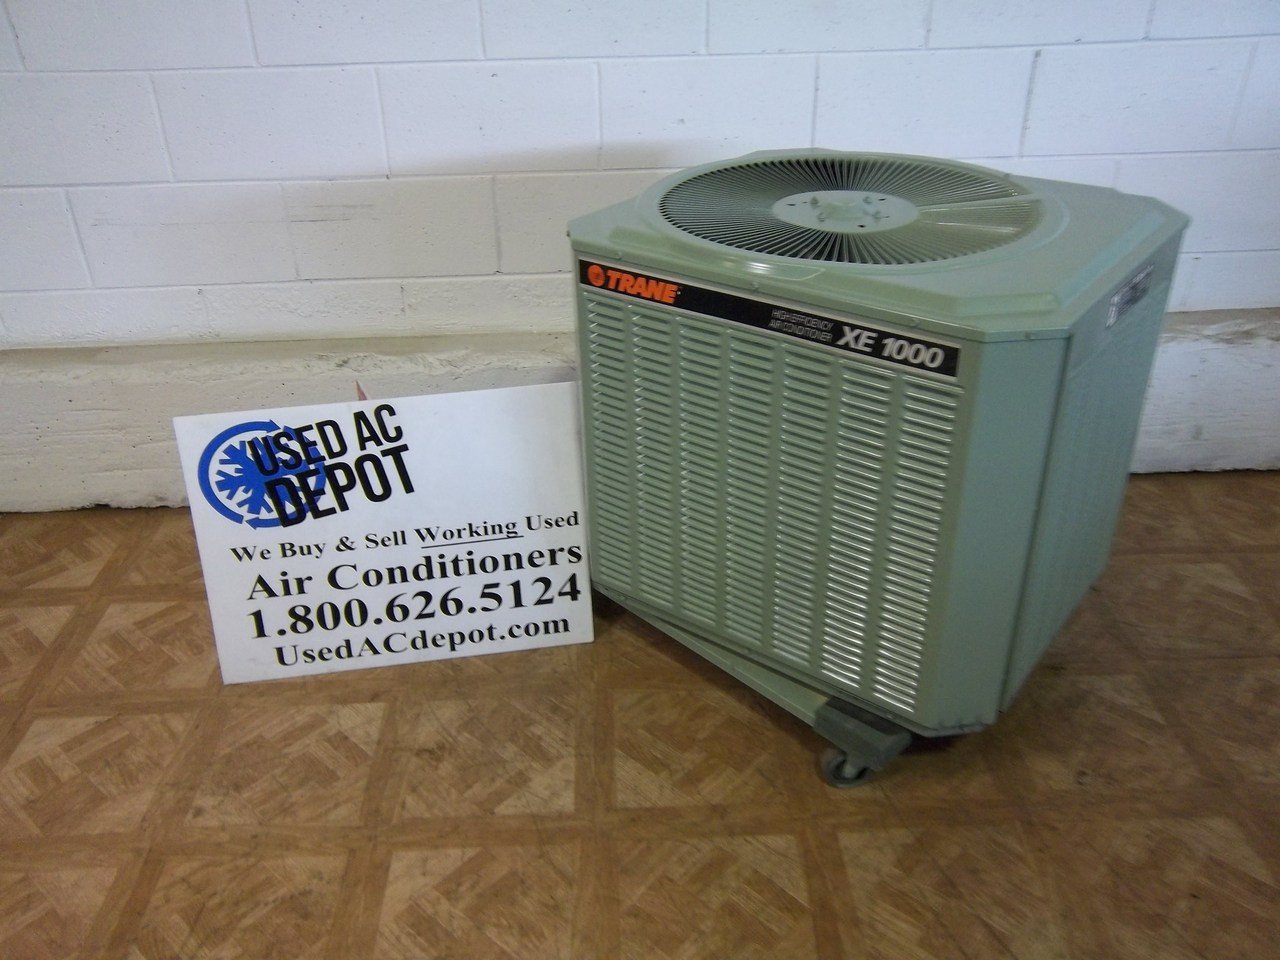 #624A2C Home Depot Air Conditioner Condenser Best Home Design  Most Effective 375 Ac Home Depot pictures with 1280x960 px on helpvideos.info - Air Conditioners, Air Coolers and more